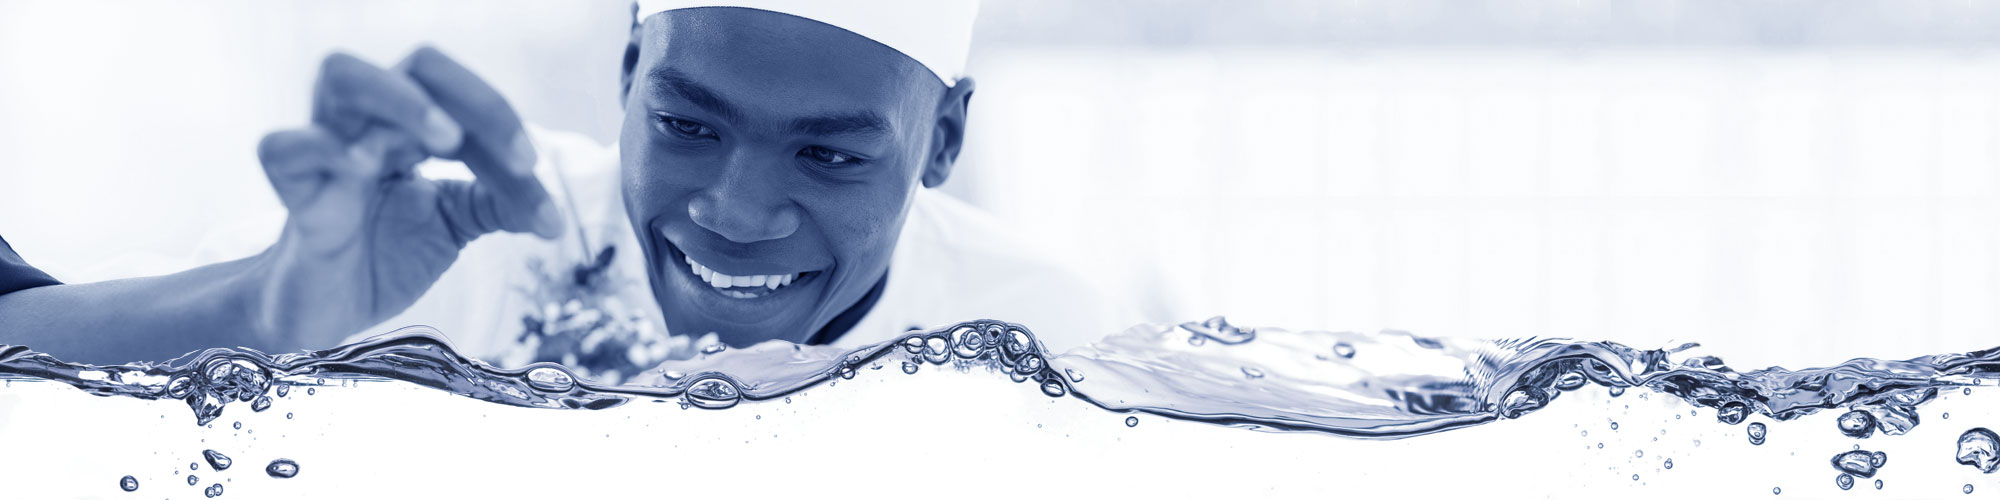 chef-cooking-catering-equipment-south-africa